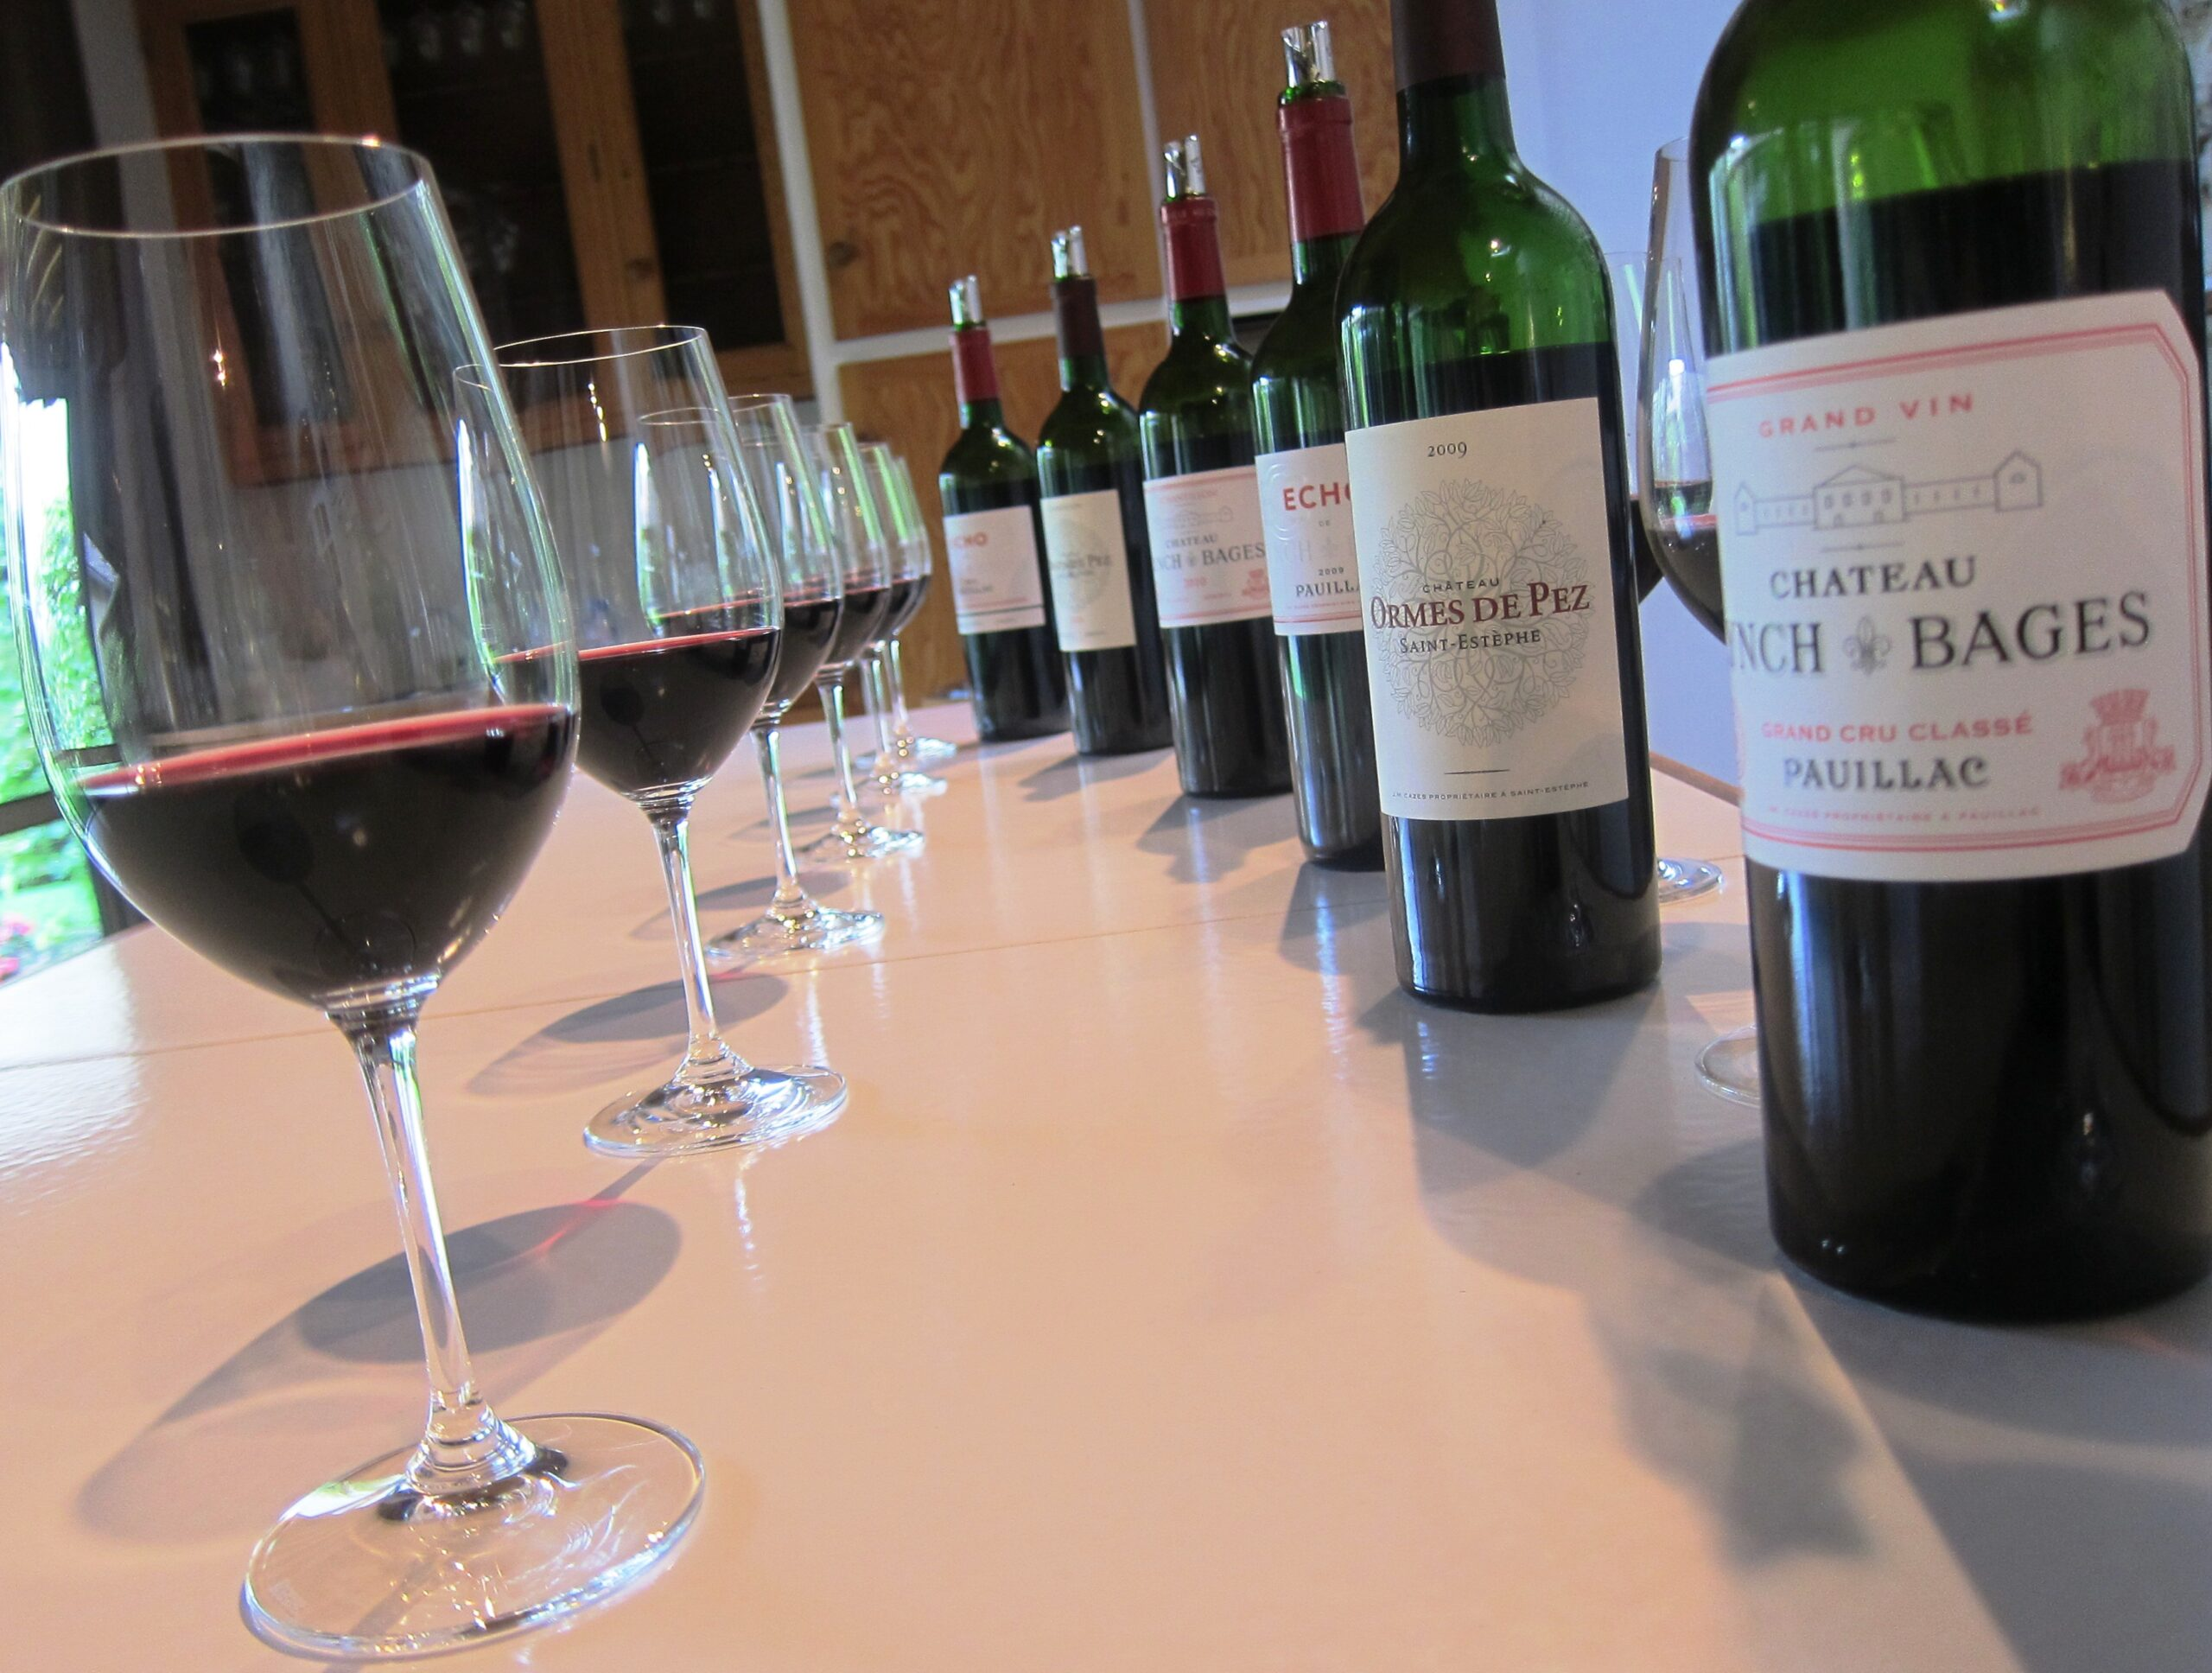 2009 Lynch Bages Opulence, Vs 2010 Lynch Bages Structure in Pauillac